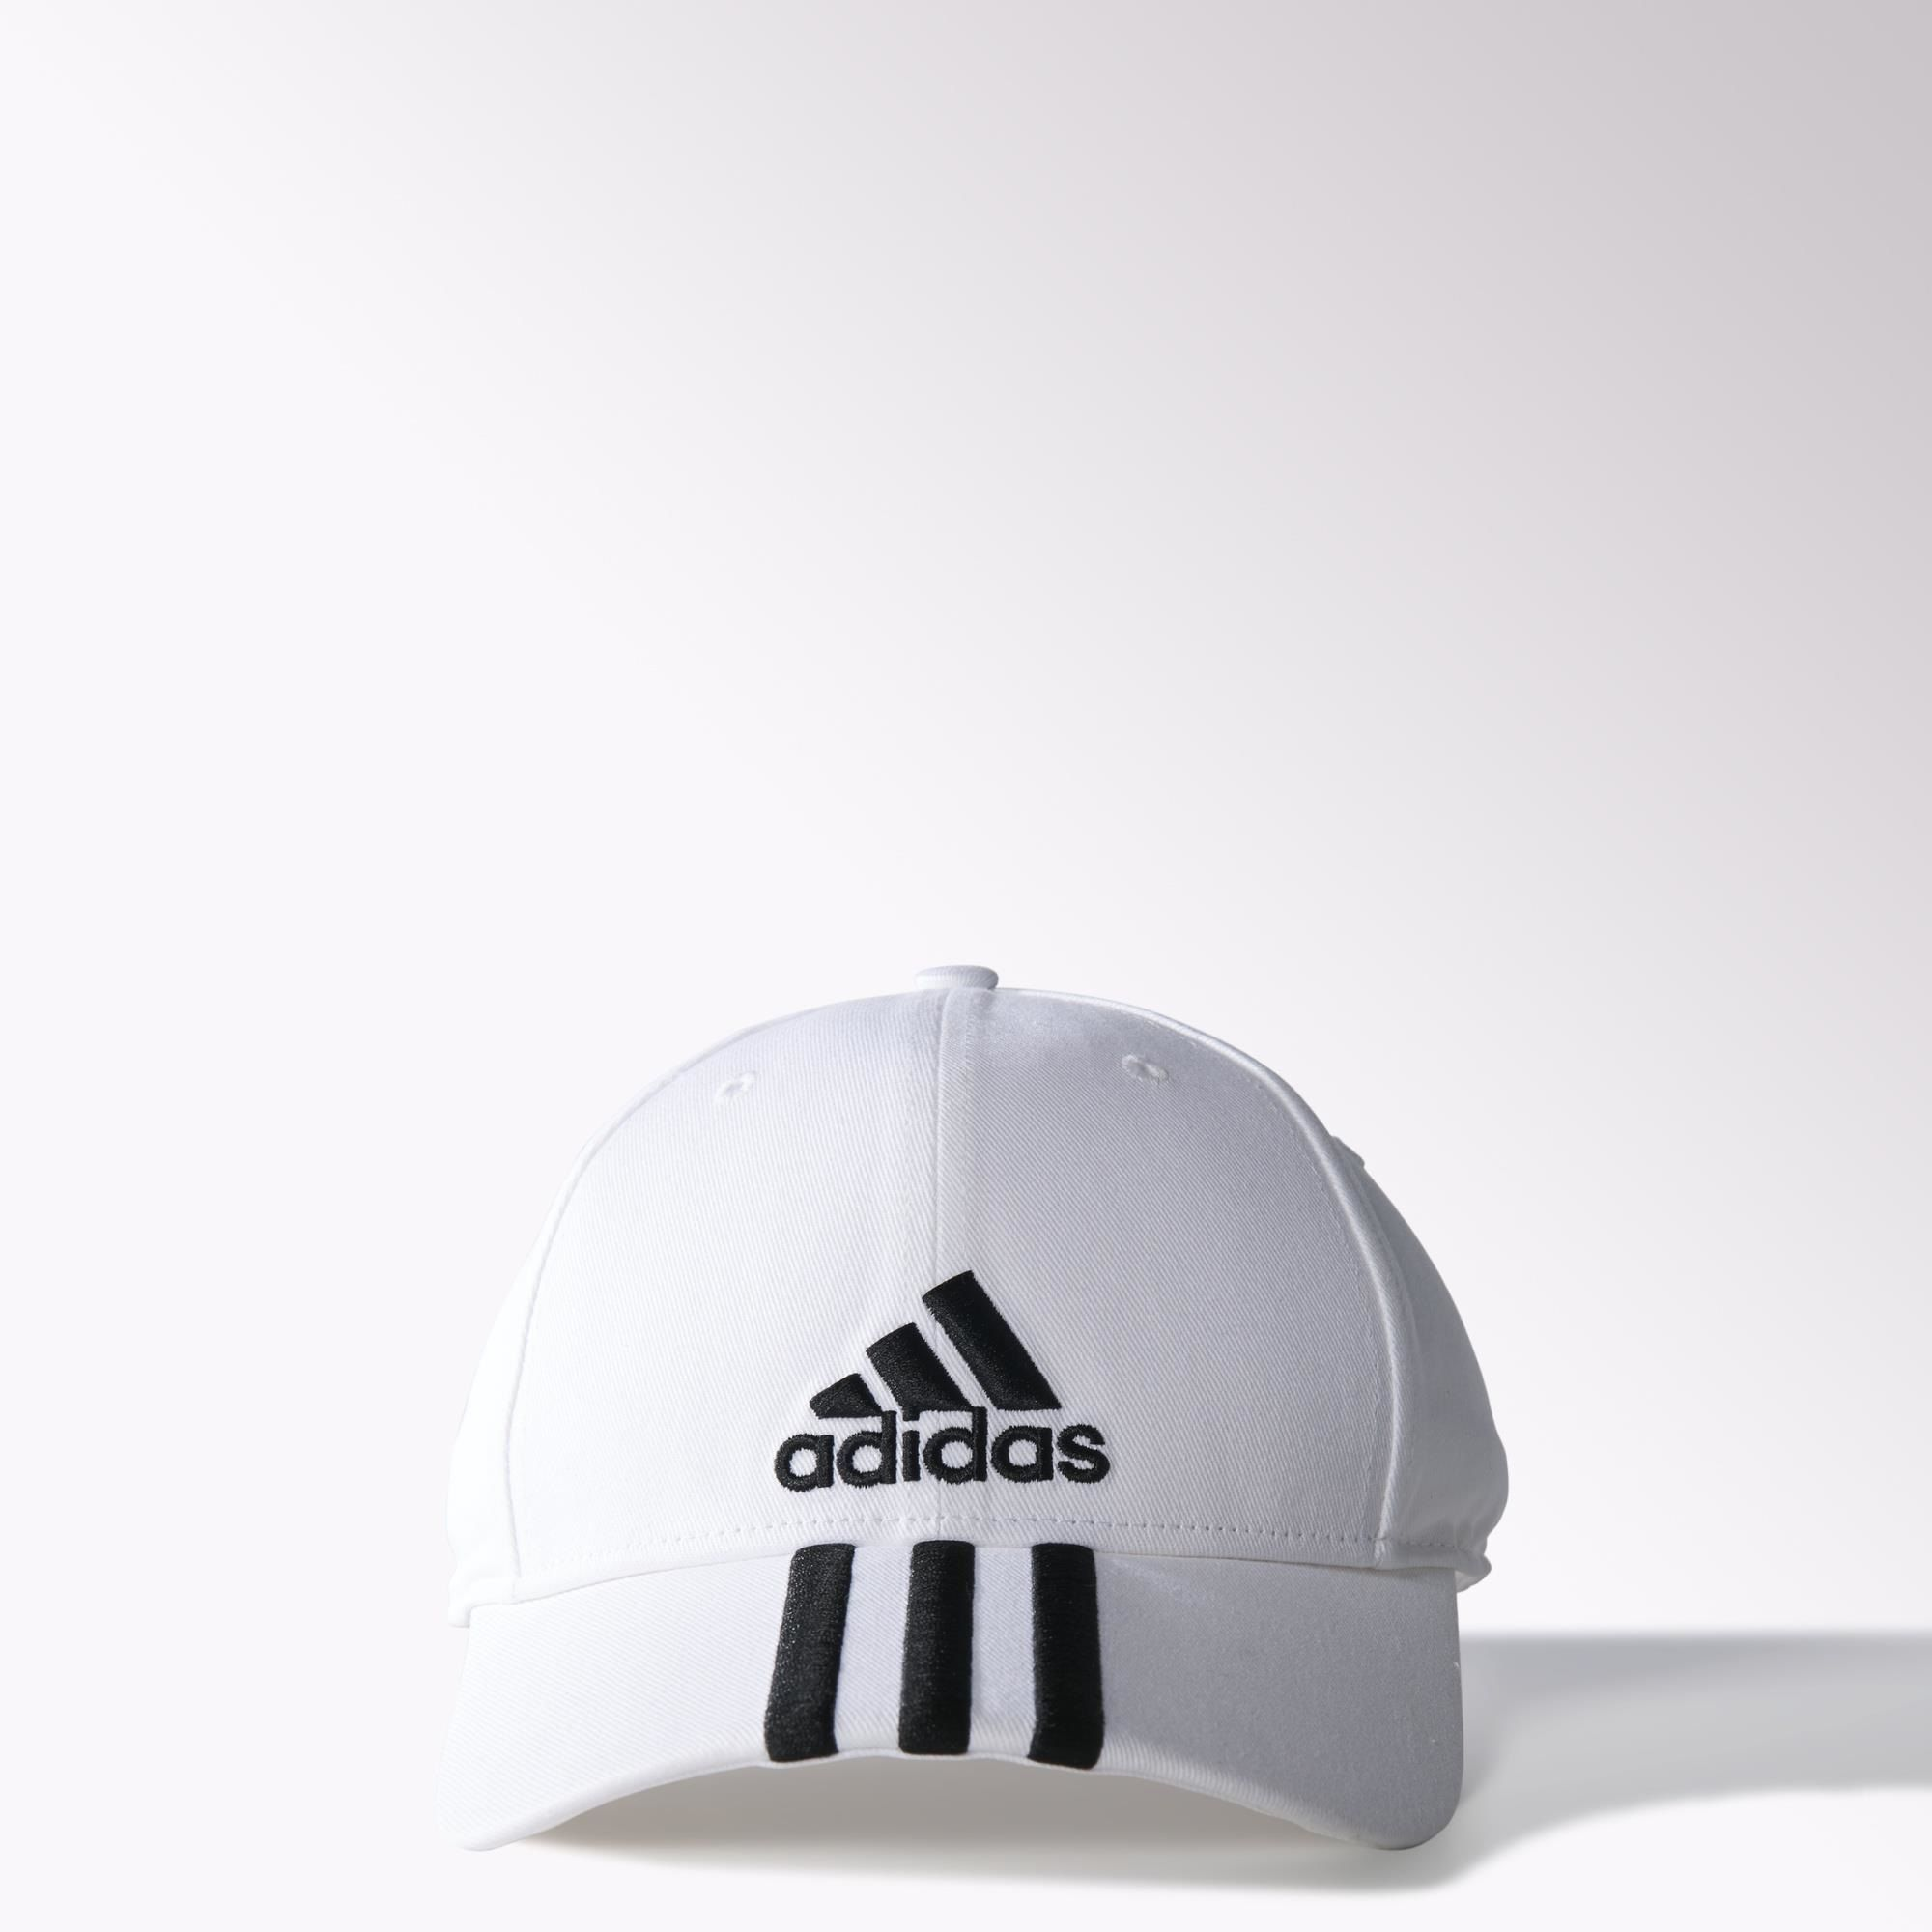 New  Adidas Originals White Classic Performance Baseball Cap - hat 4a7d8e3574